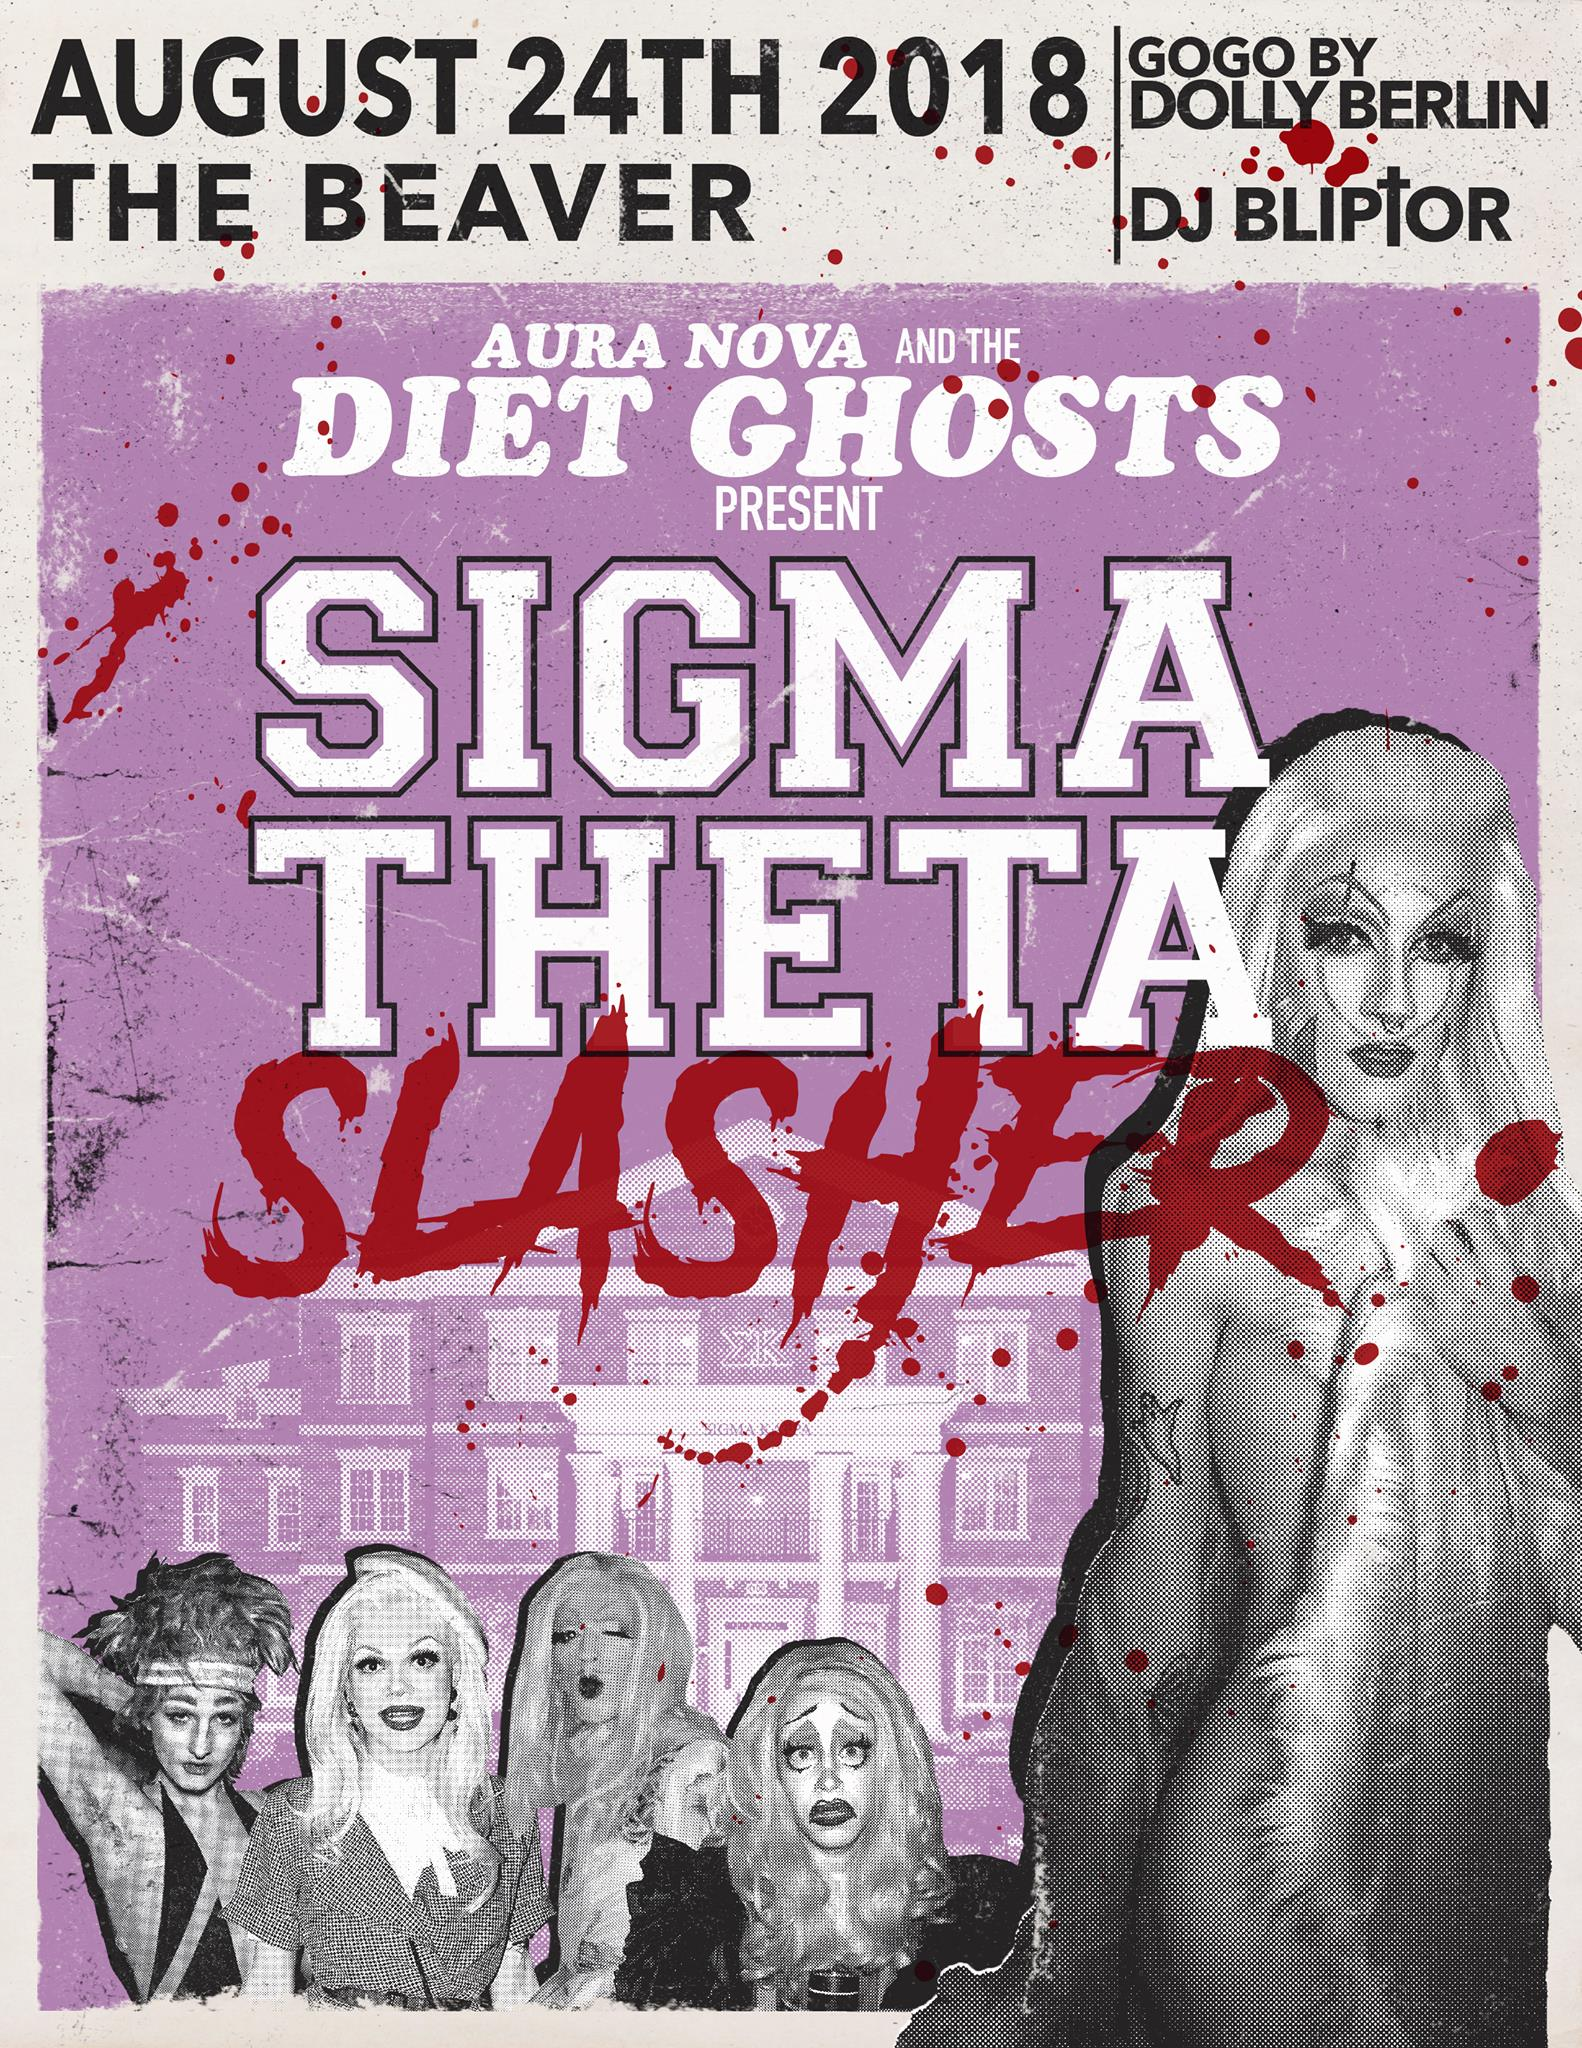 diet-ghosts-stigma-theta-slasher